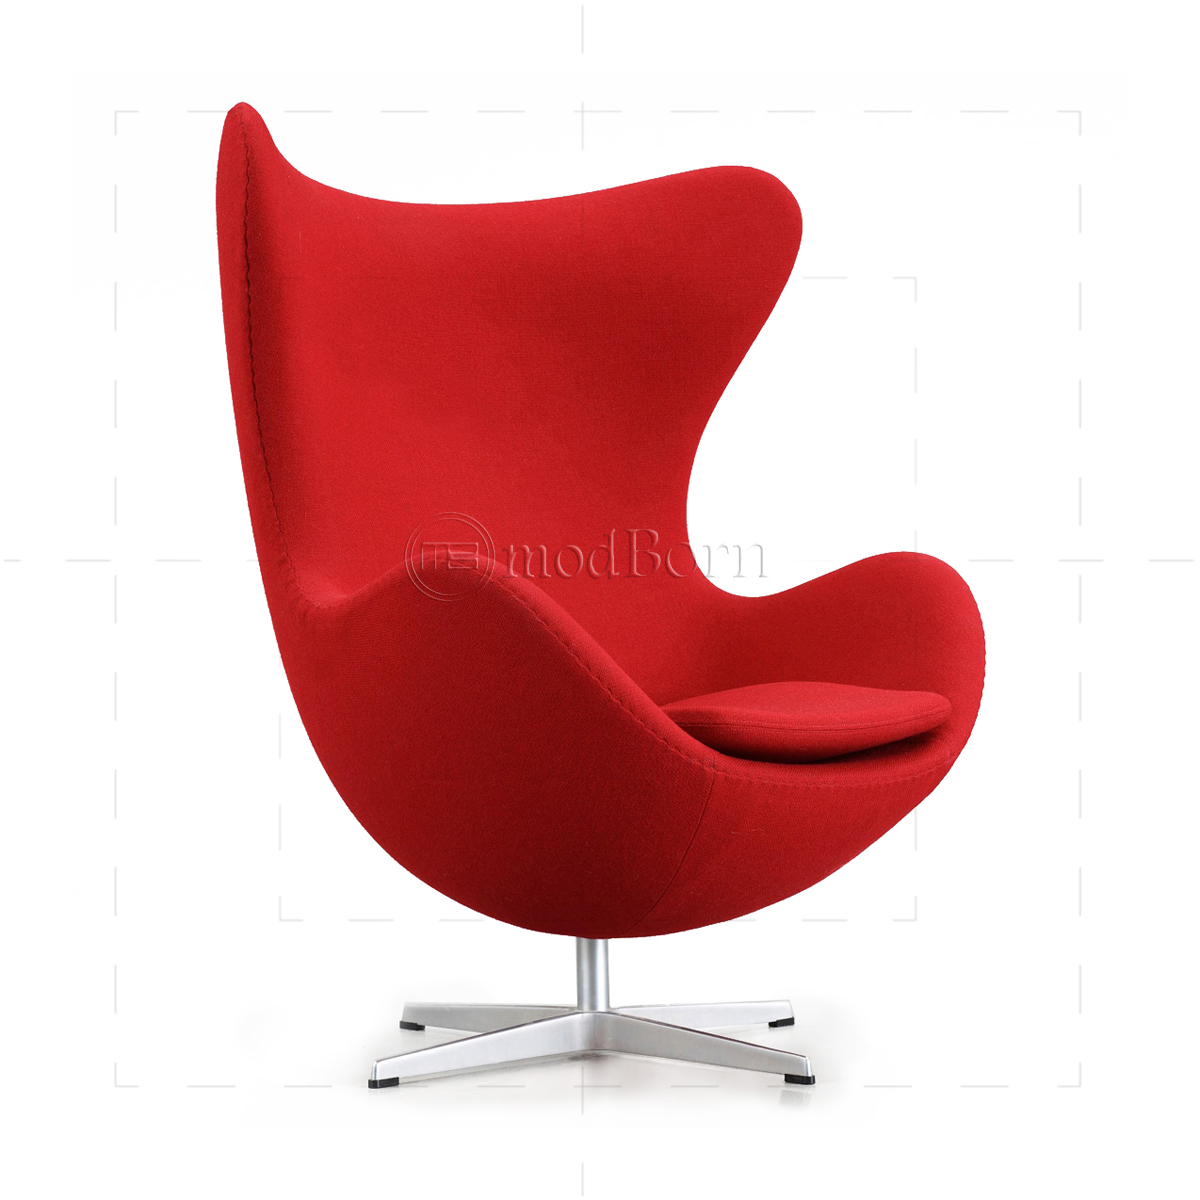 Arne jacobsen style egg cashmere wool chair red replica for Arne jacobsen replica